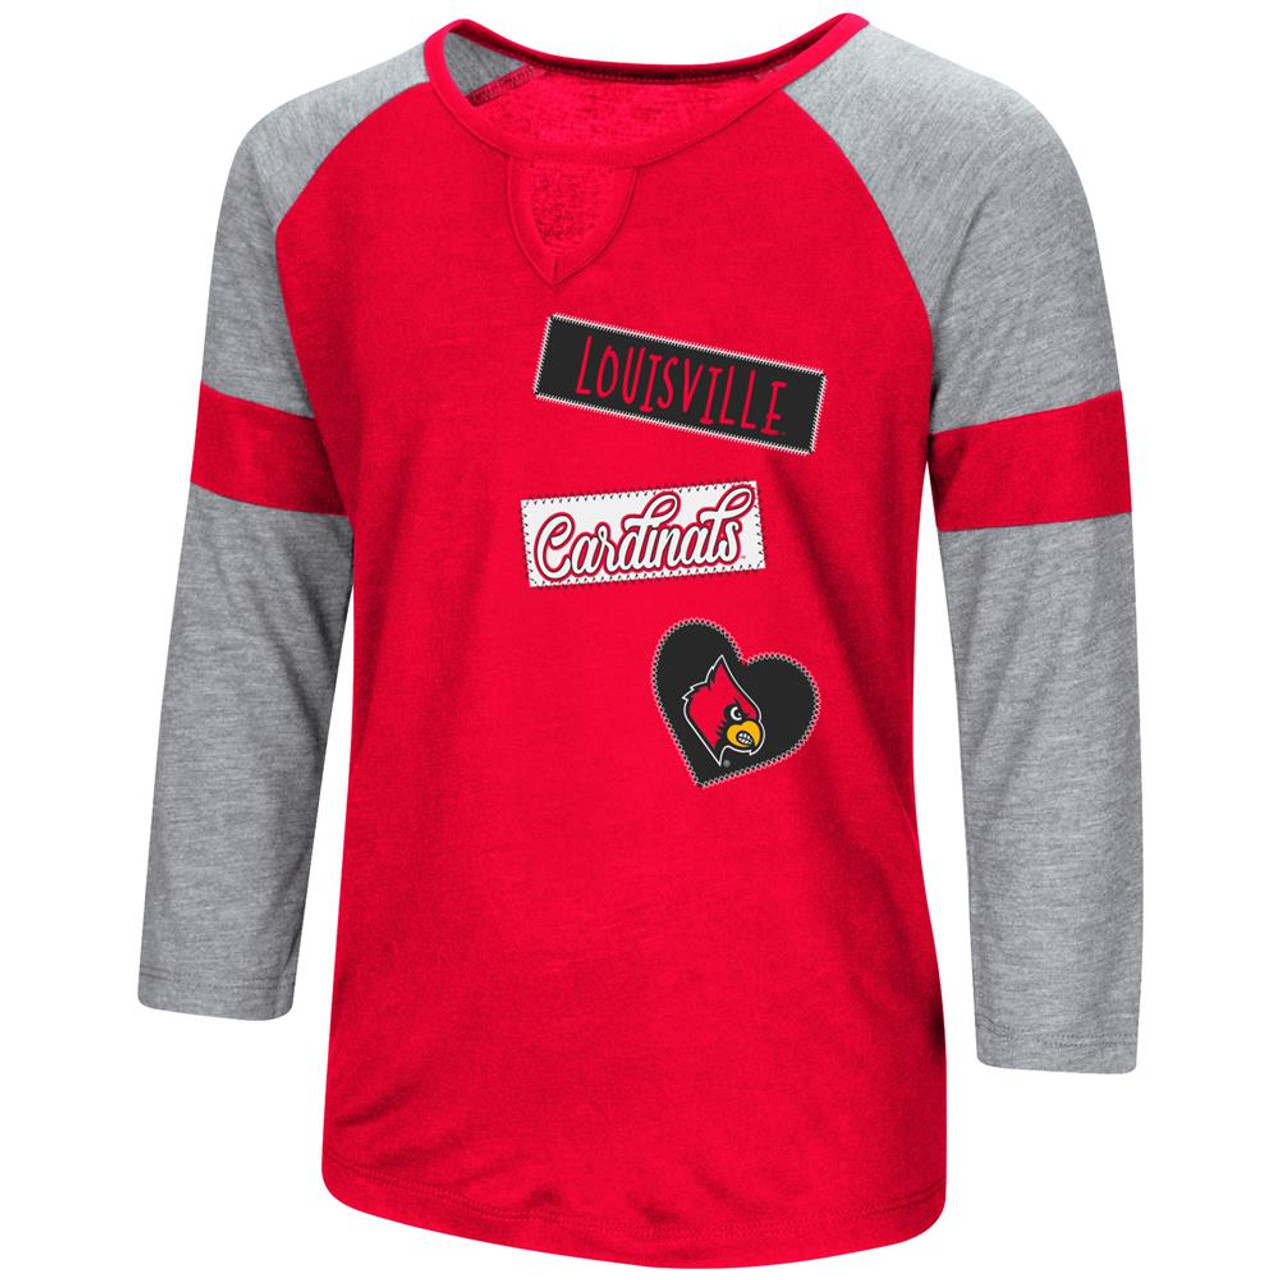 Louisville Cardinals Youth Girls 3/4 Sleeve All You Need Tee